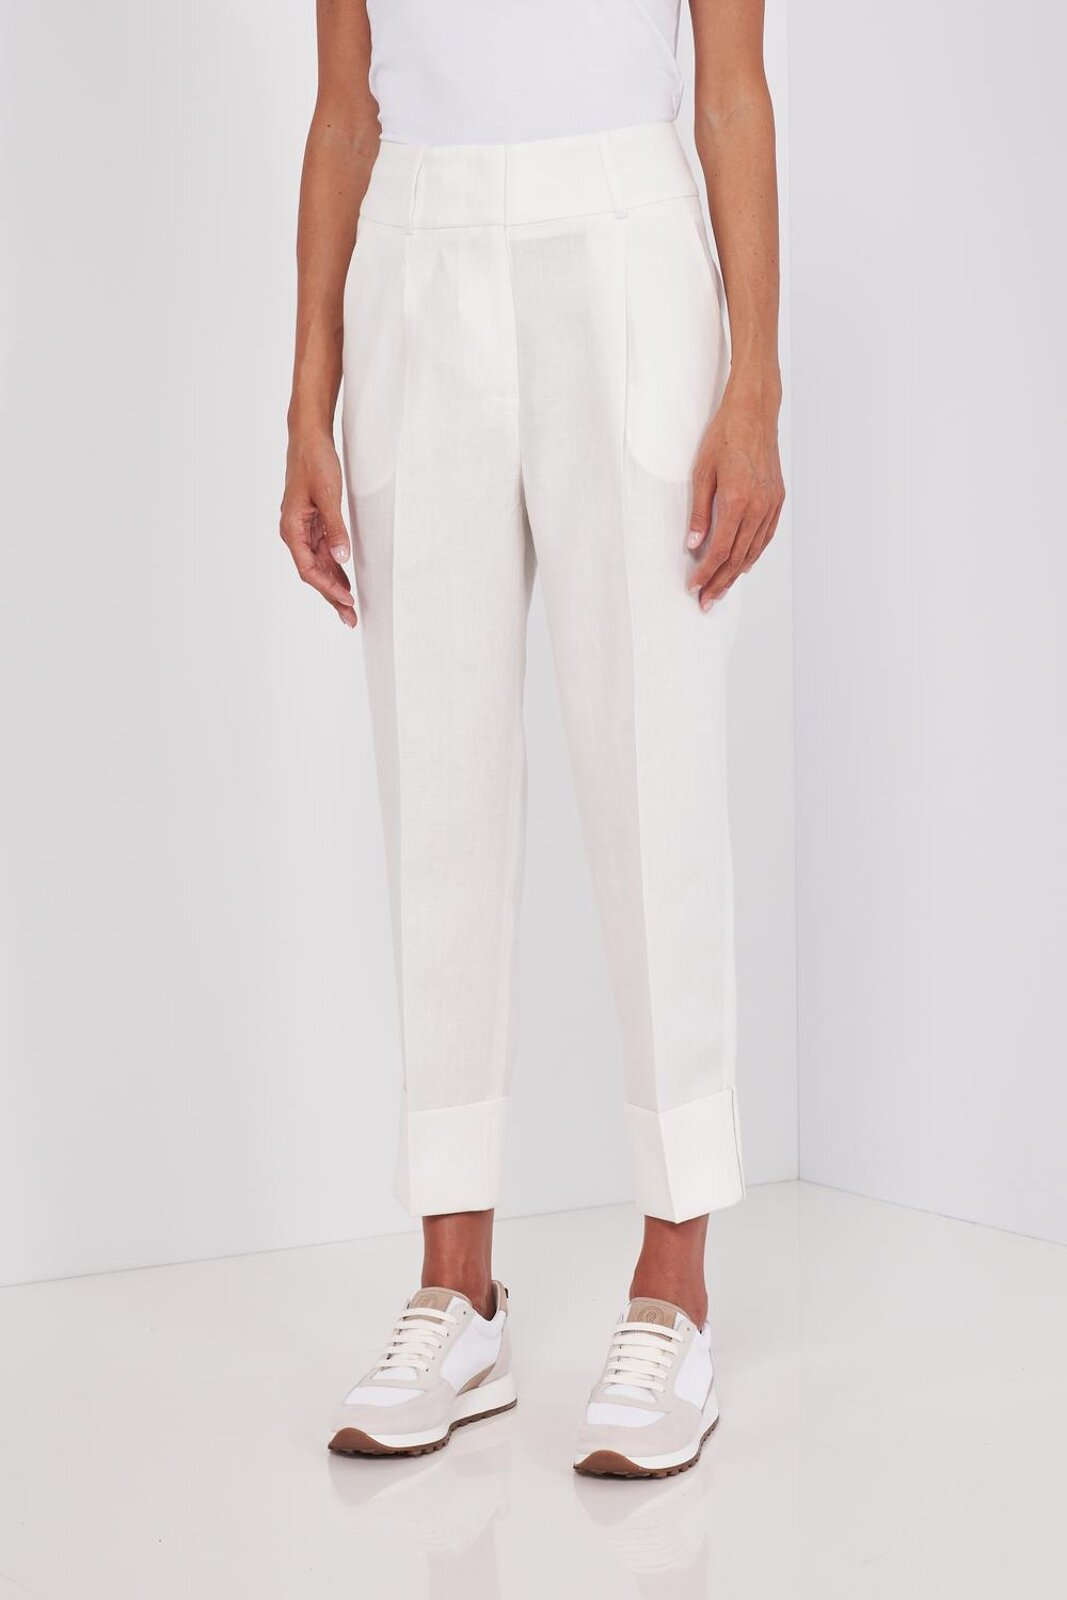 High Waisted Pure Linen Trousers With Ankle Cuffs With Metallic Detail. Hidden Zip Closure, Soft Fit. - Peserico